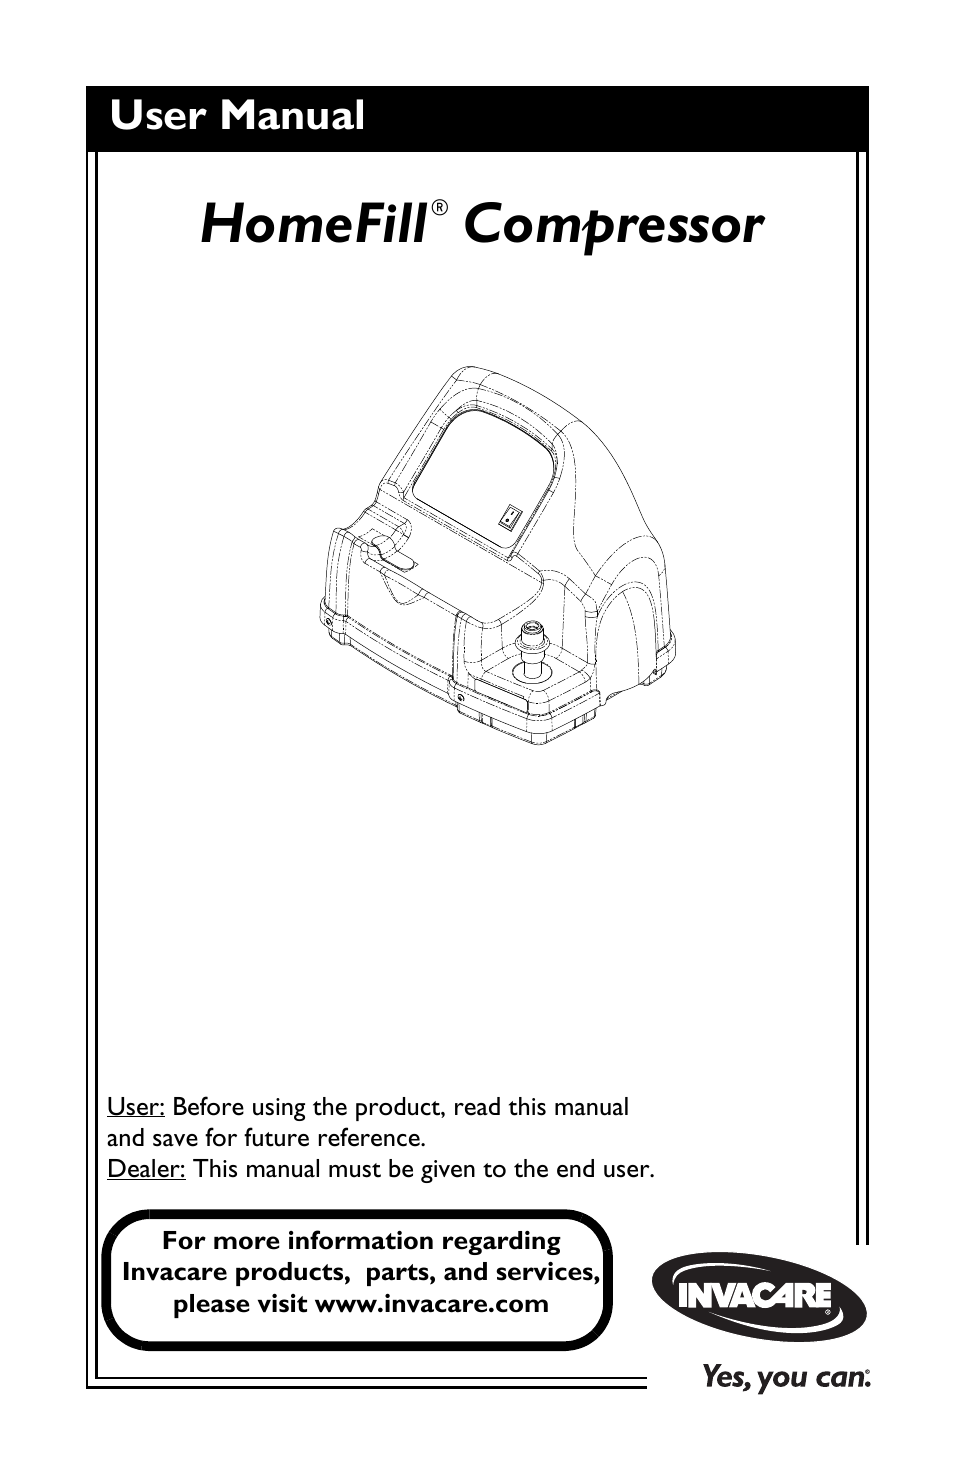 invacare compressor user manual